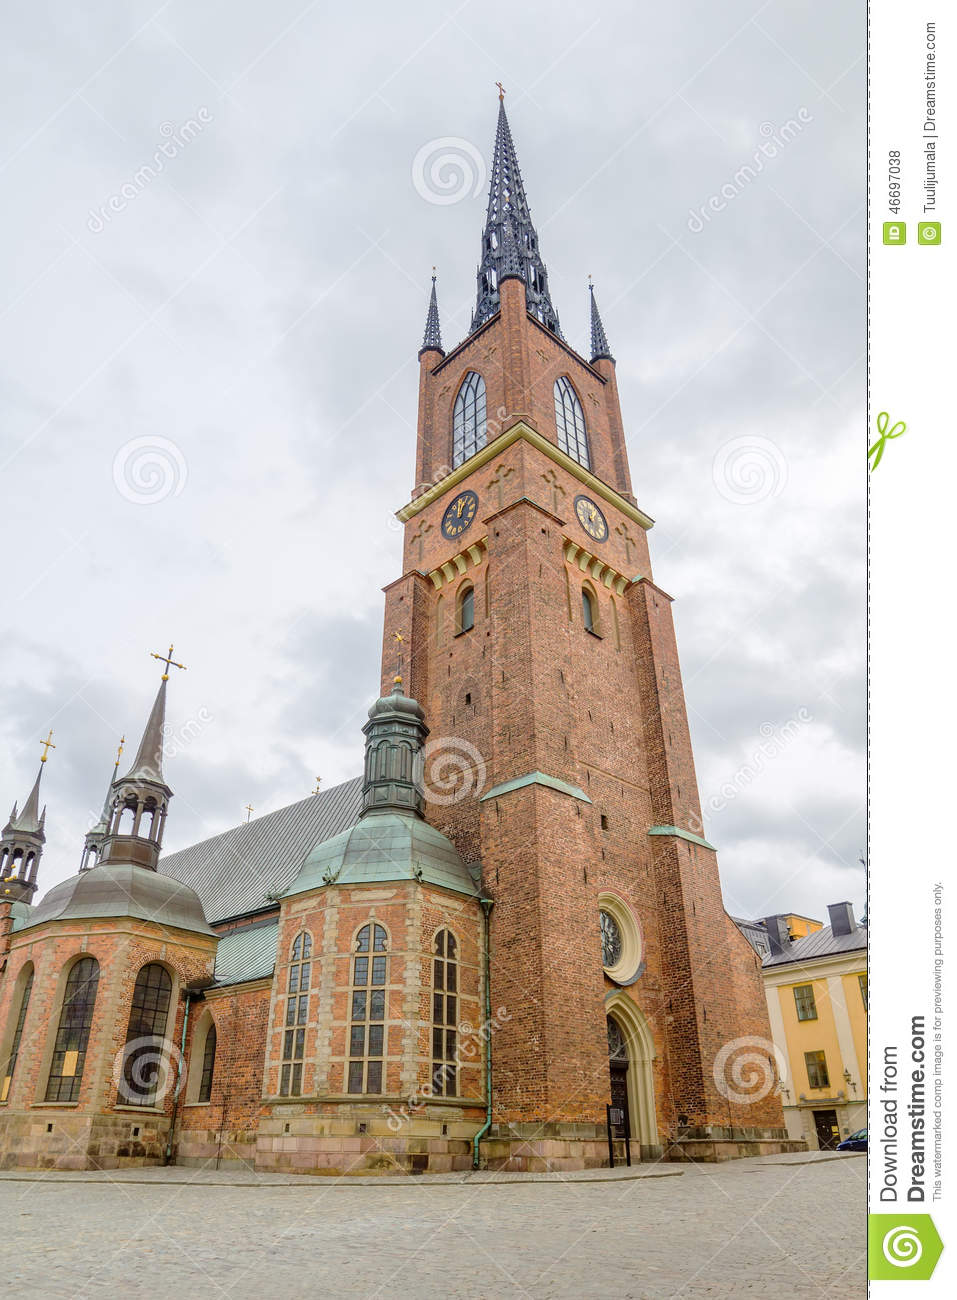 Riddarholmen Church Tower Stock Photo.